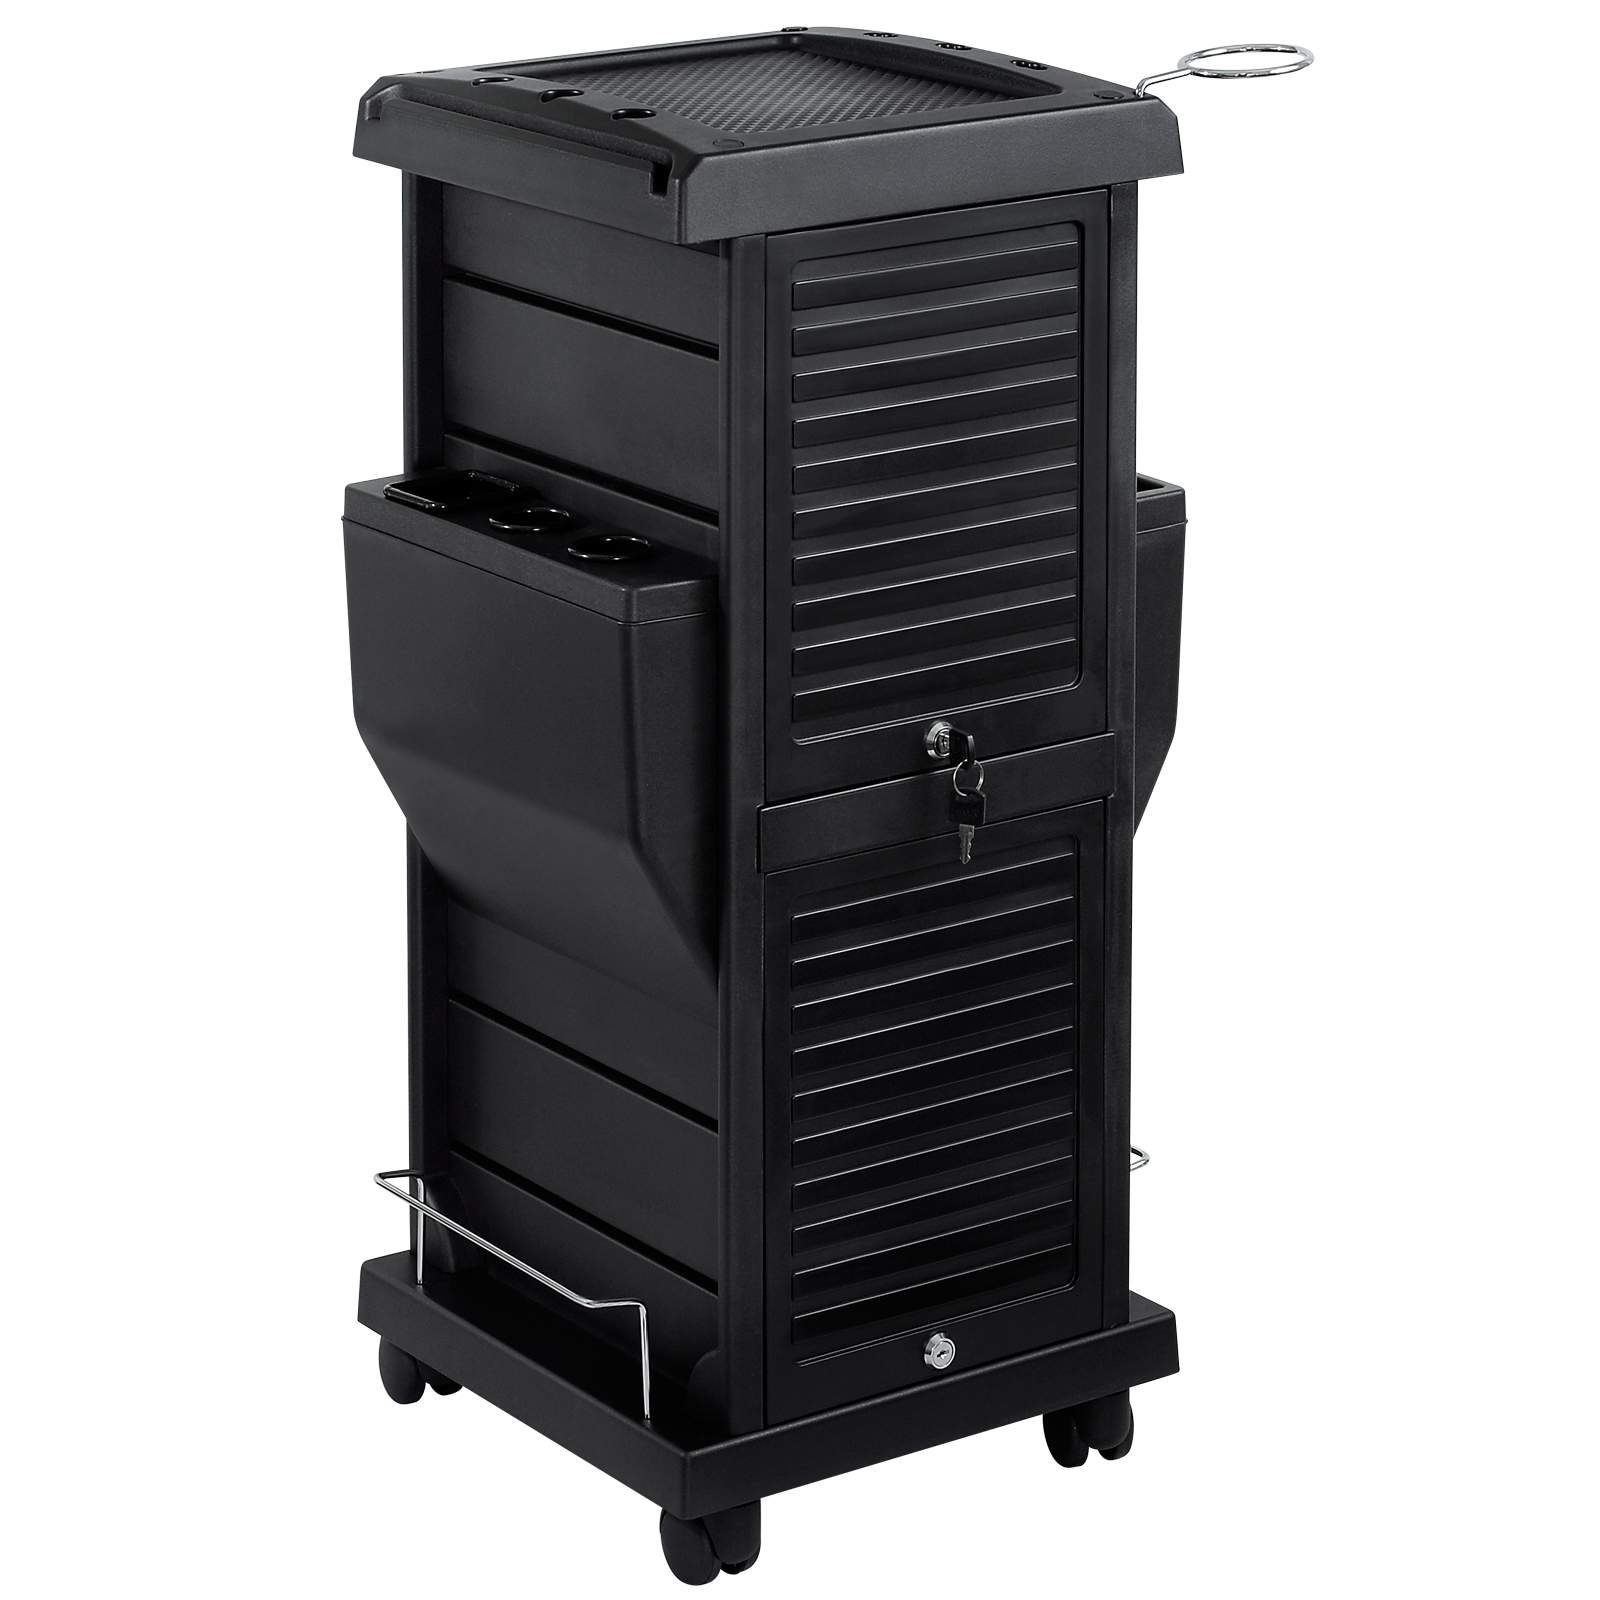 Saloniture Premium Locking Rolling Trolley Cart with Pocket Inserts - Black by Saloniture